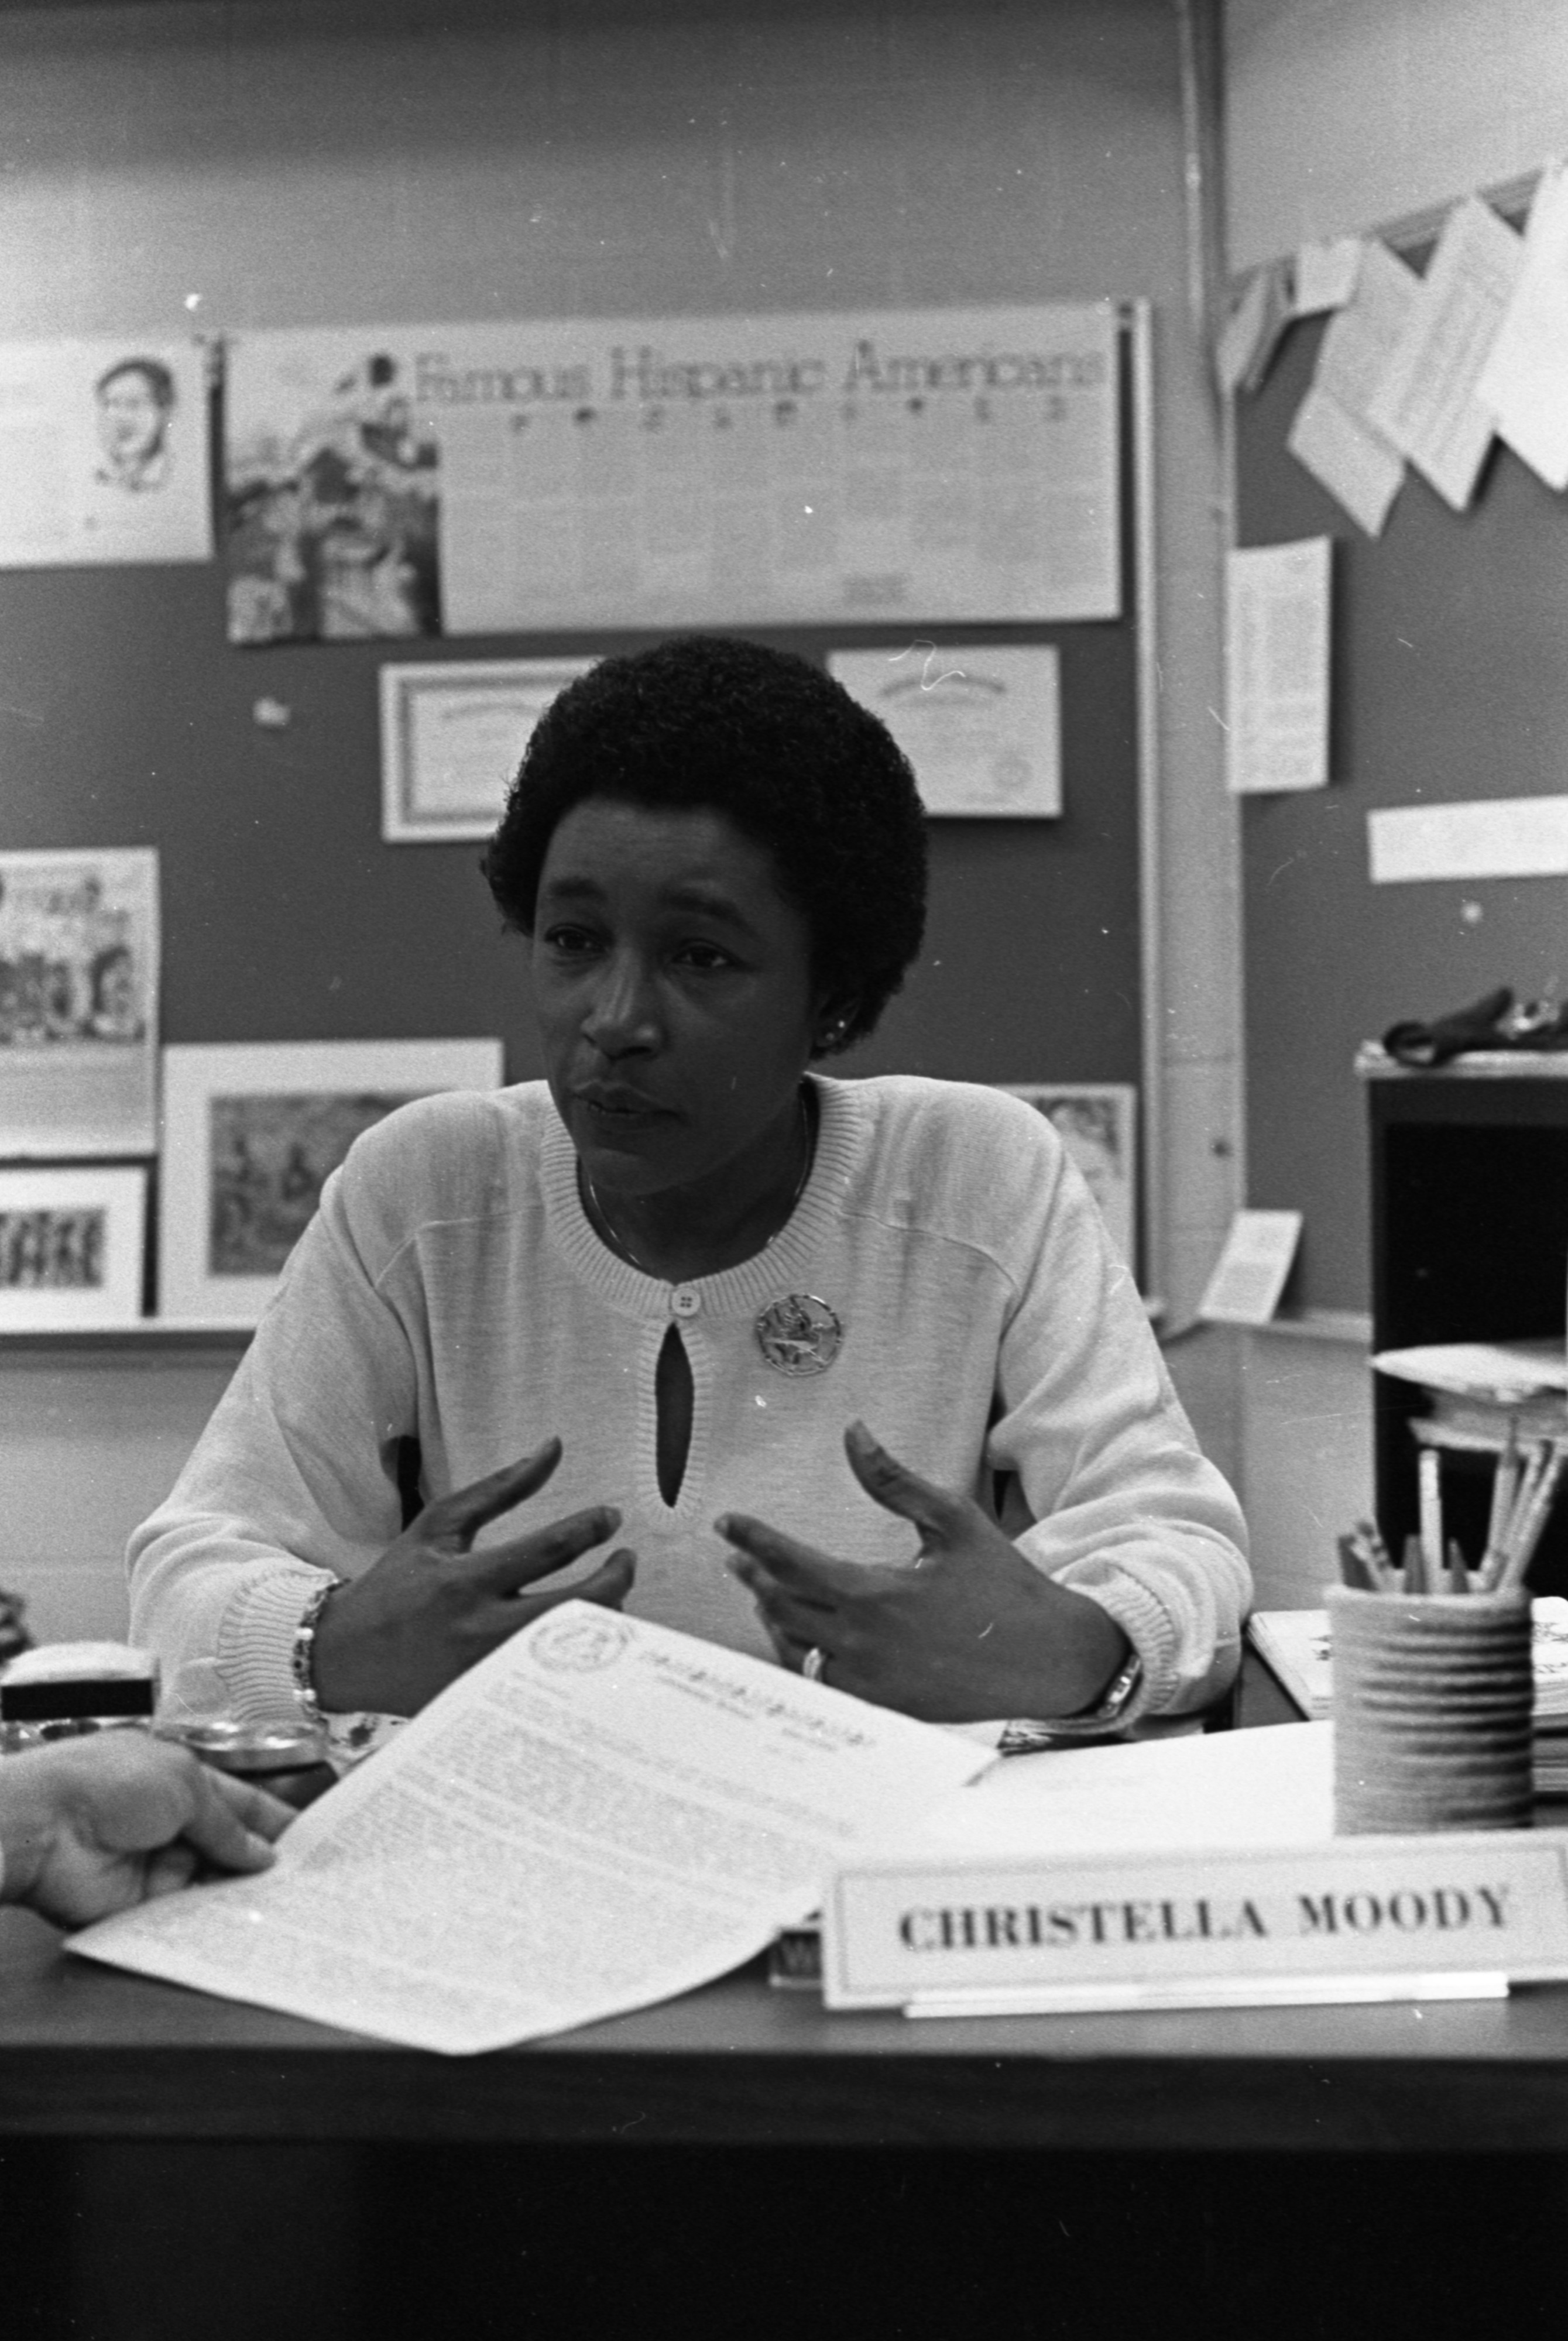 an essay on anne moody and the black panthers Mississippi black codes 1865 essays and research papers this autobiography is memoires of anne moody about growing up poor and black in the rural mississippi the black panthers [also known as.